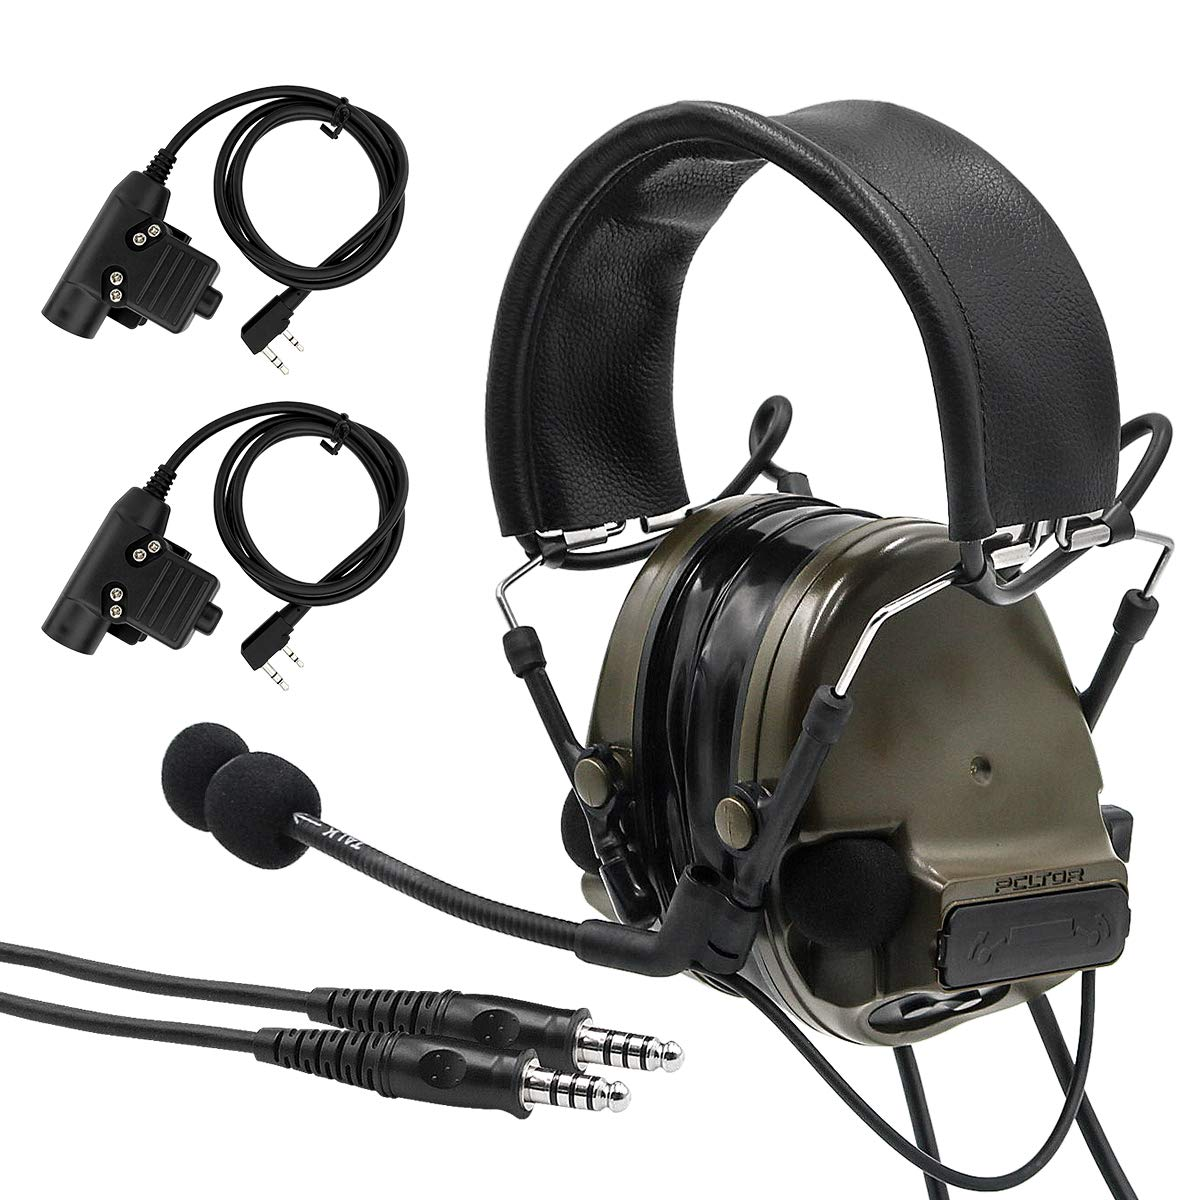 TAC-SKY Comta III Double Plugs Tactical Headset,Ear Protection,Sound Amplification for Airsoft Sport (Army Green) by TAC-SKY